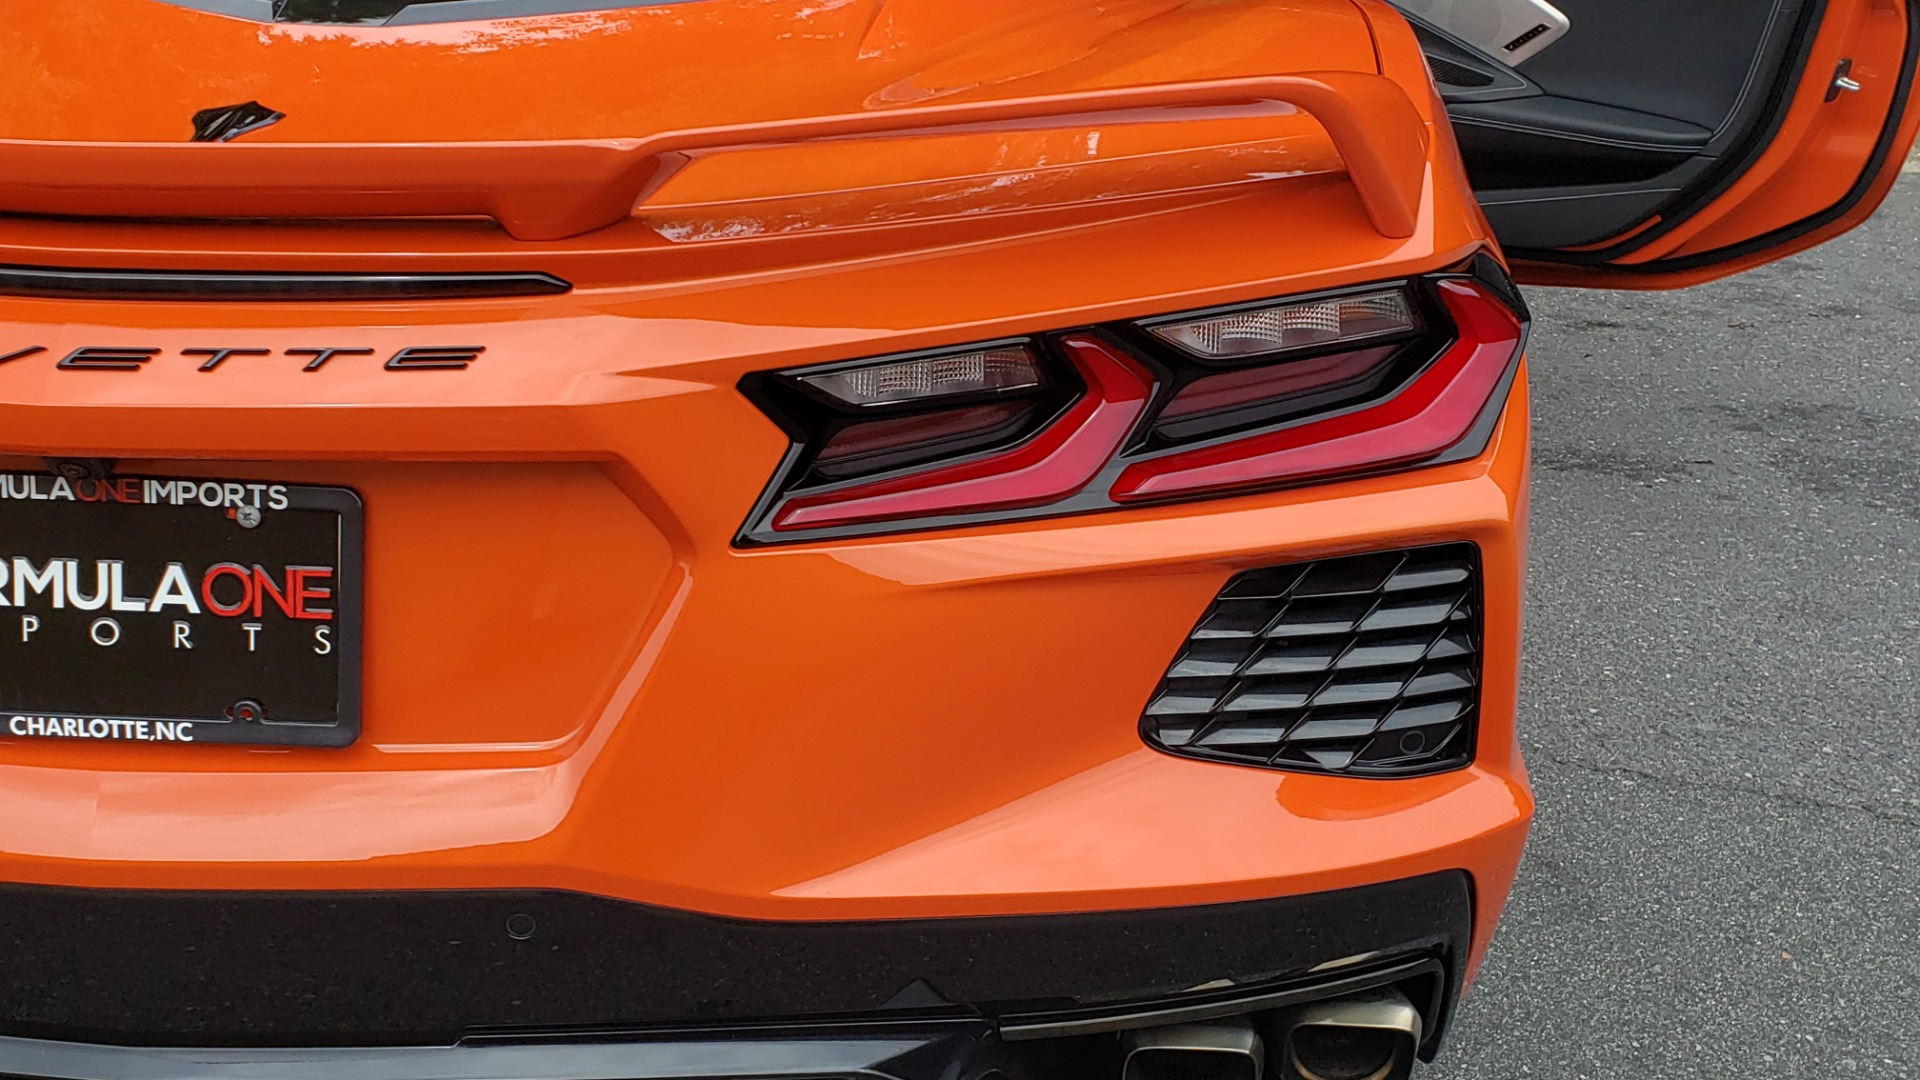 Used 2020 Chevrolet CORVETTE C8 STINGRAY 2LT / 6.2L V8 / 8-SPD AUTO / NAV / BOSE / REARVIEW / DATA RECOR for sale Sold at Formula Imports in Charlotte NC 28227 32